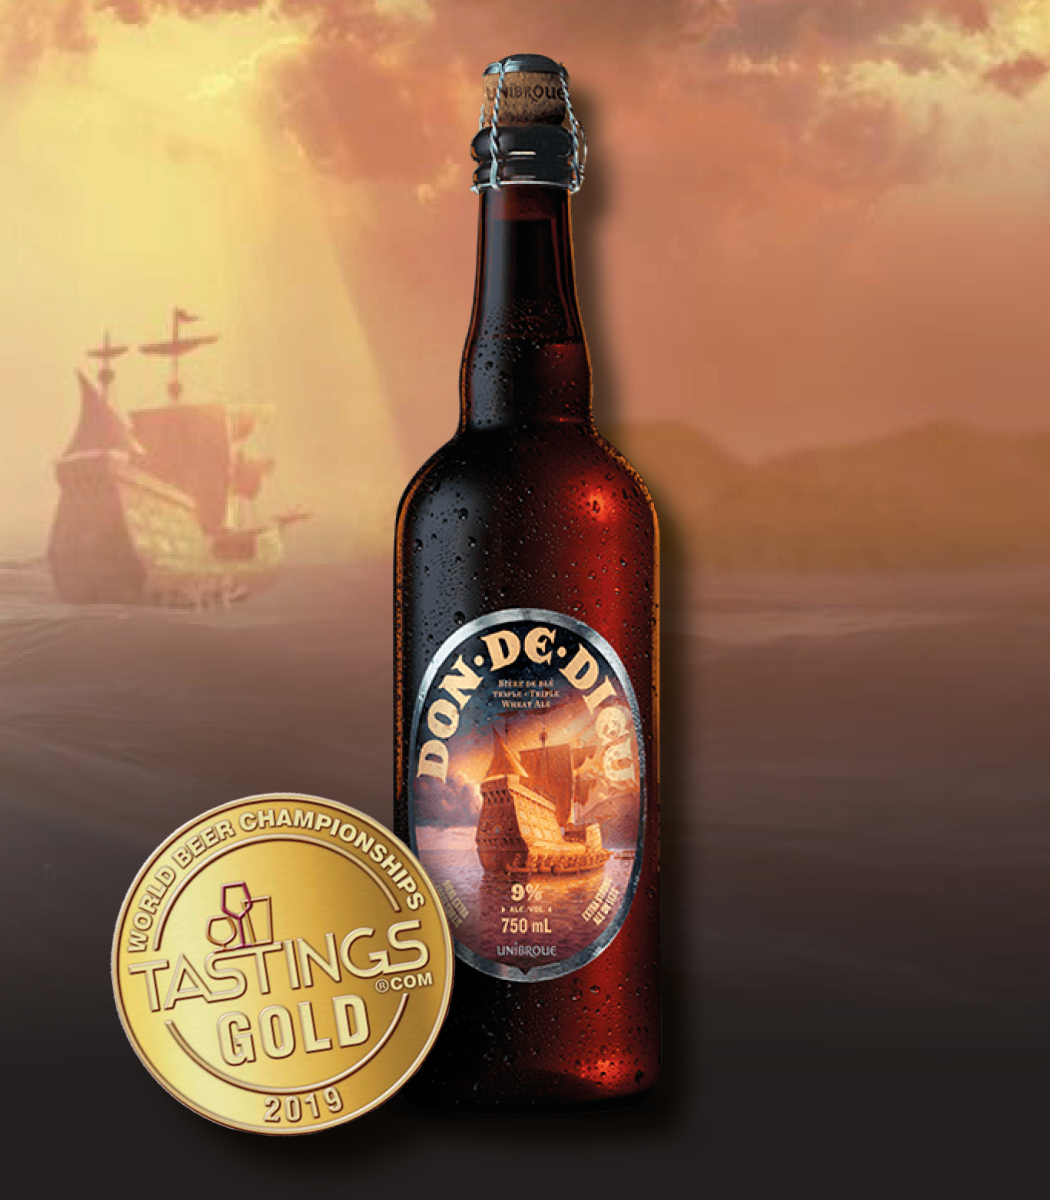 UNIBROUE RÉCOLTE 3 MÉDAILLES D'OR ET 2 D'ARGENT AU WORLD BEER CHAMPIONSHIPS DE CHICAGO